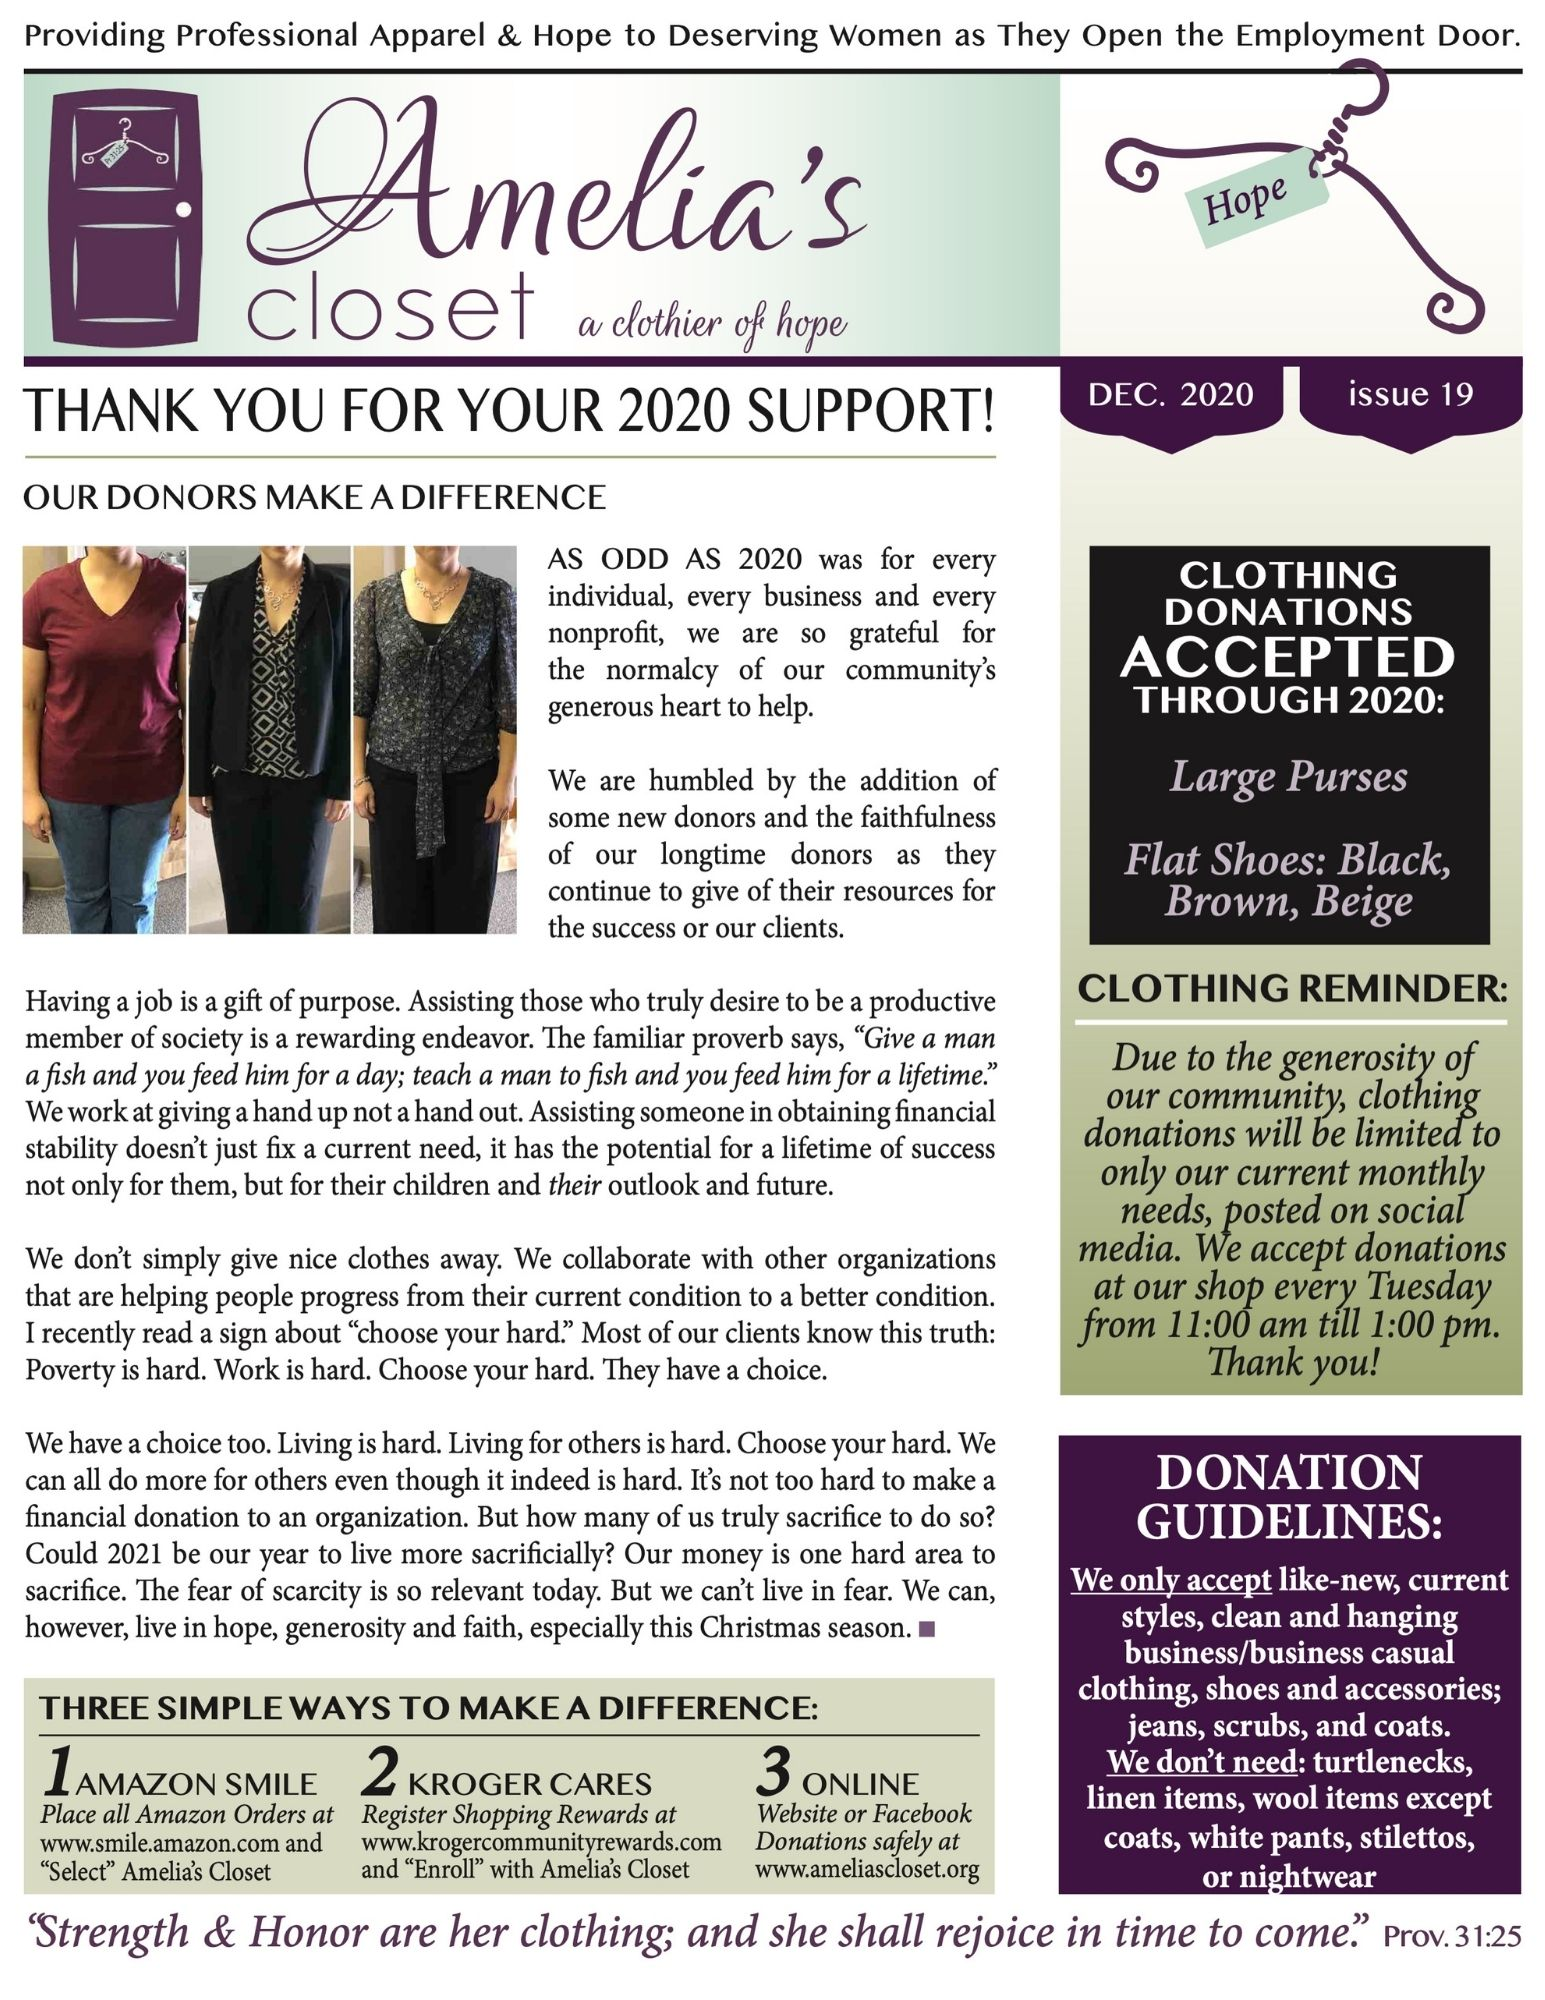 Amelias Closet Newsletter December 2020 pg 1